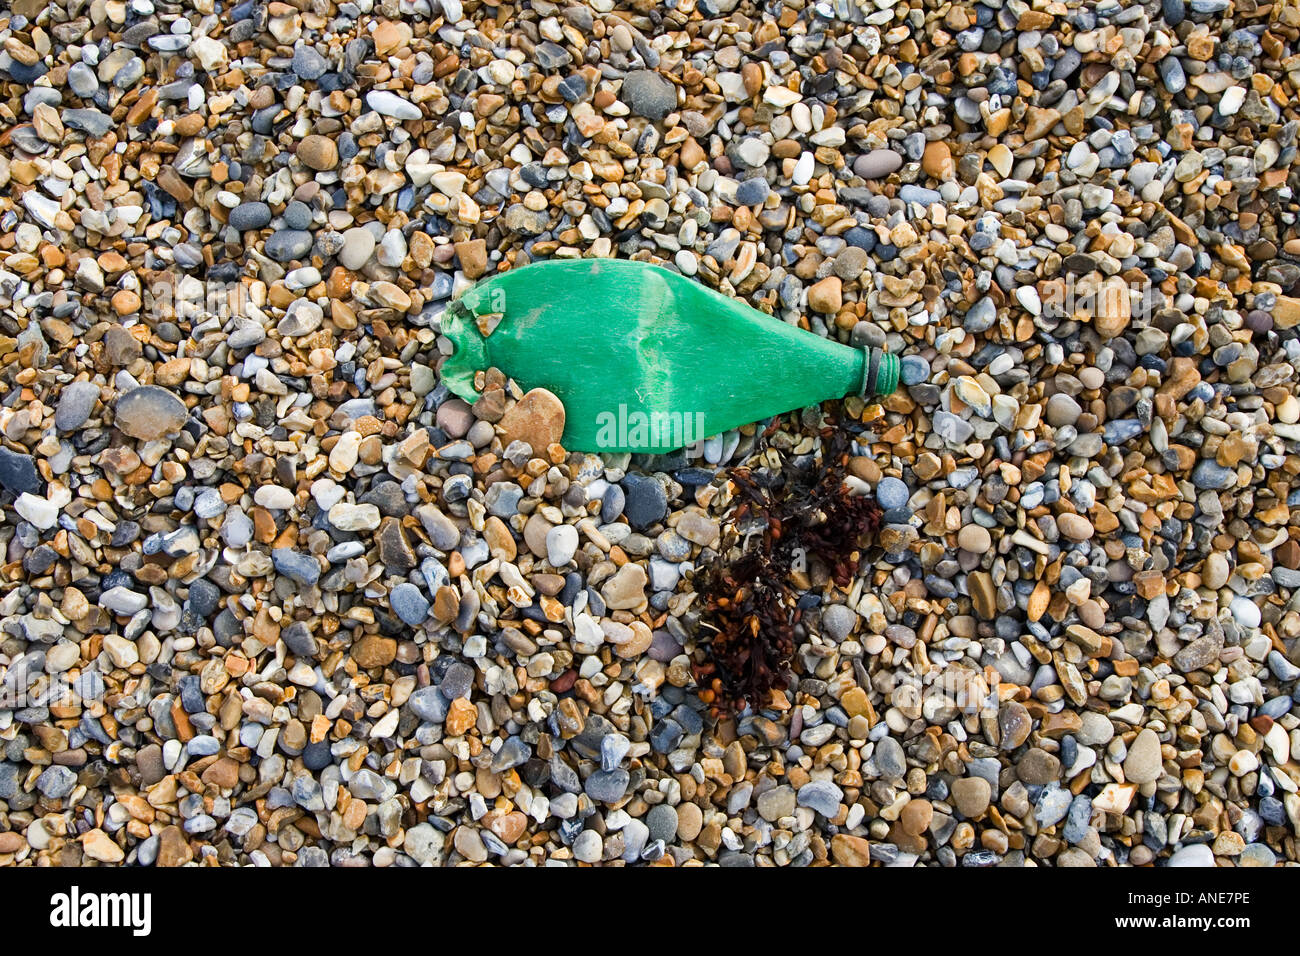 Plastic bottle discarded next to seaweed on Cley Beach Norfolk United Kingdom - Stock Image